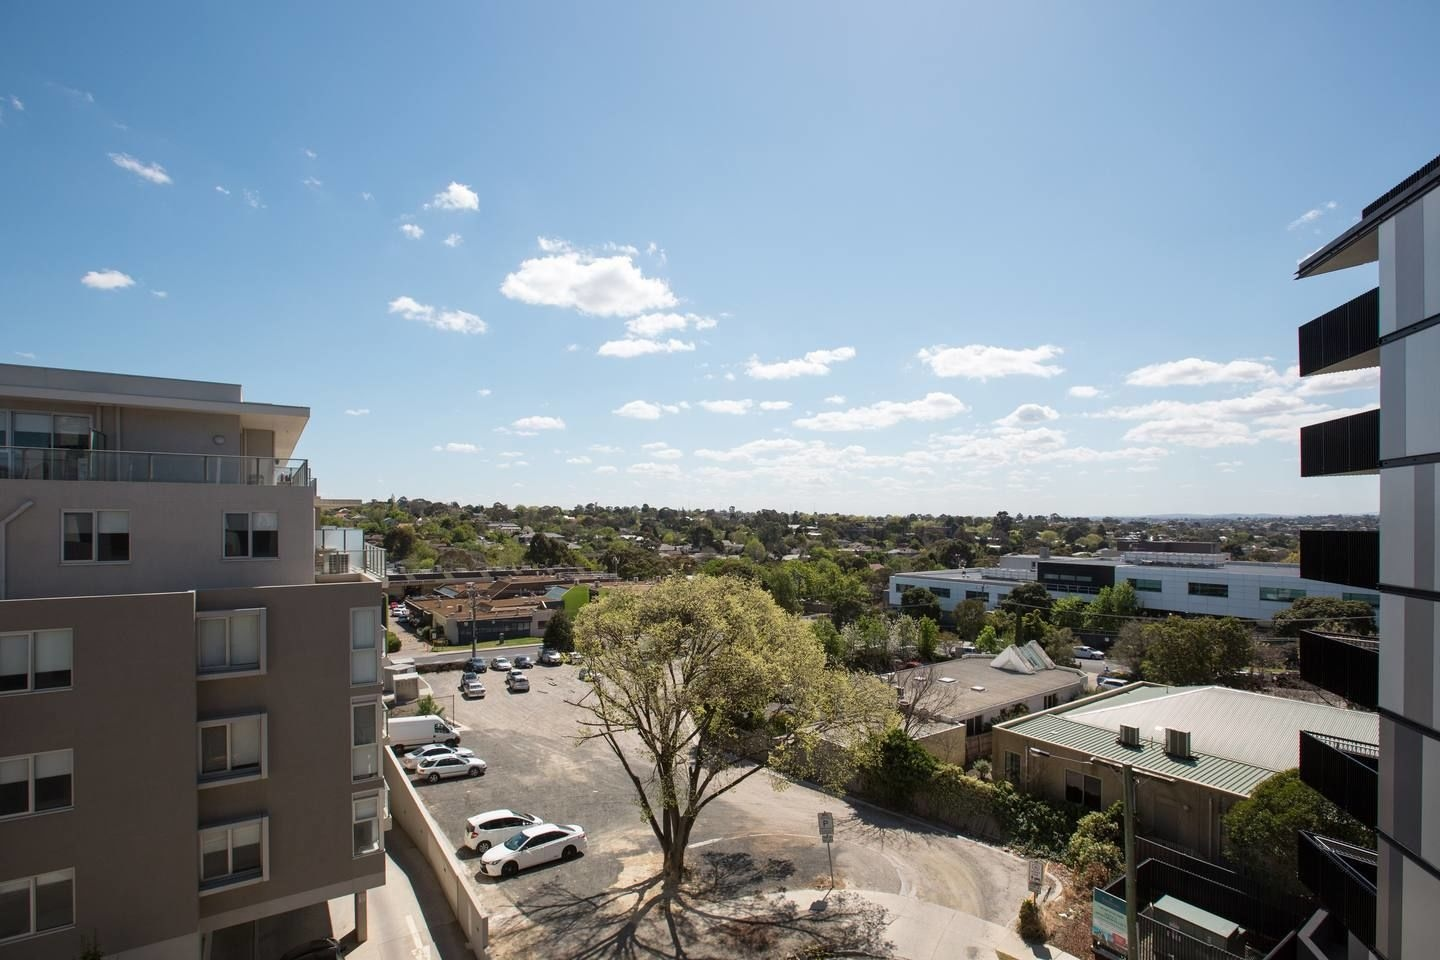 61 Boutique One-bedroom Boxhill Central Mall, Whitehorse - Box Hill